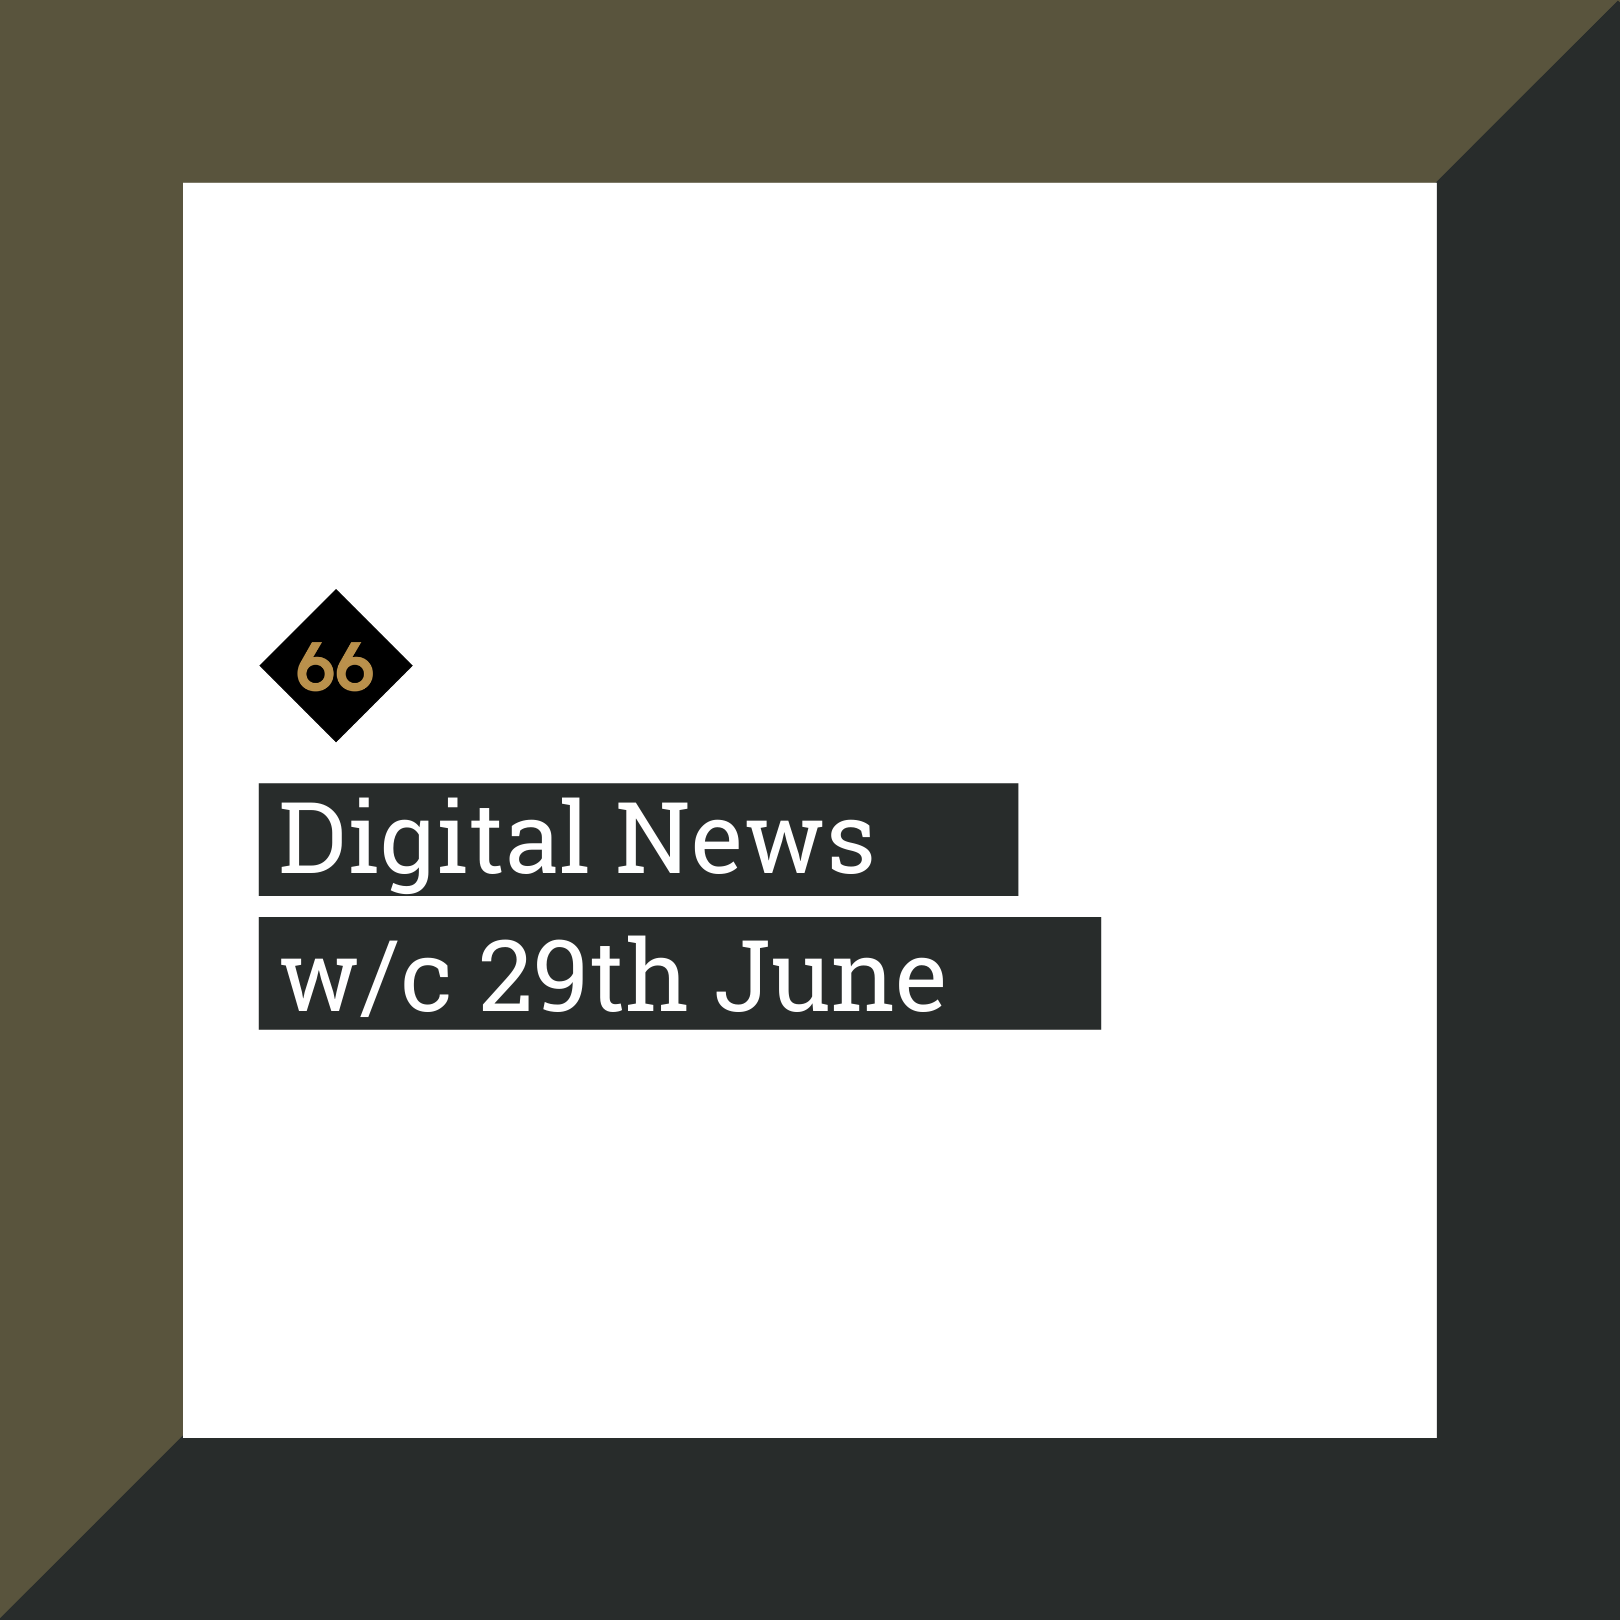 Digital News w/c 29th June